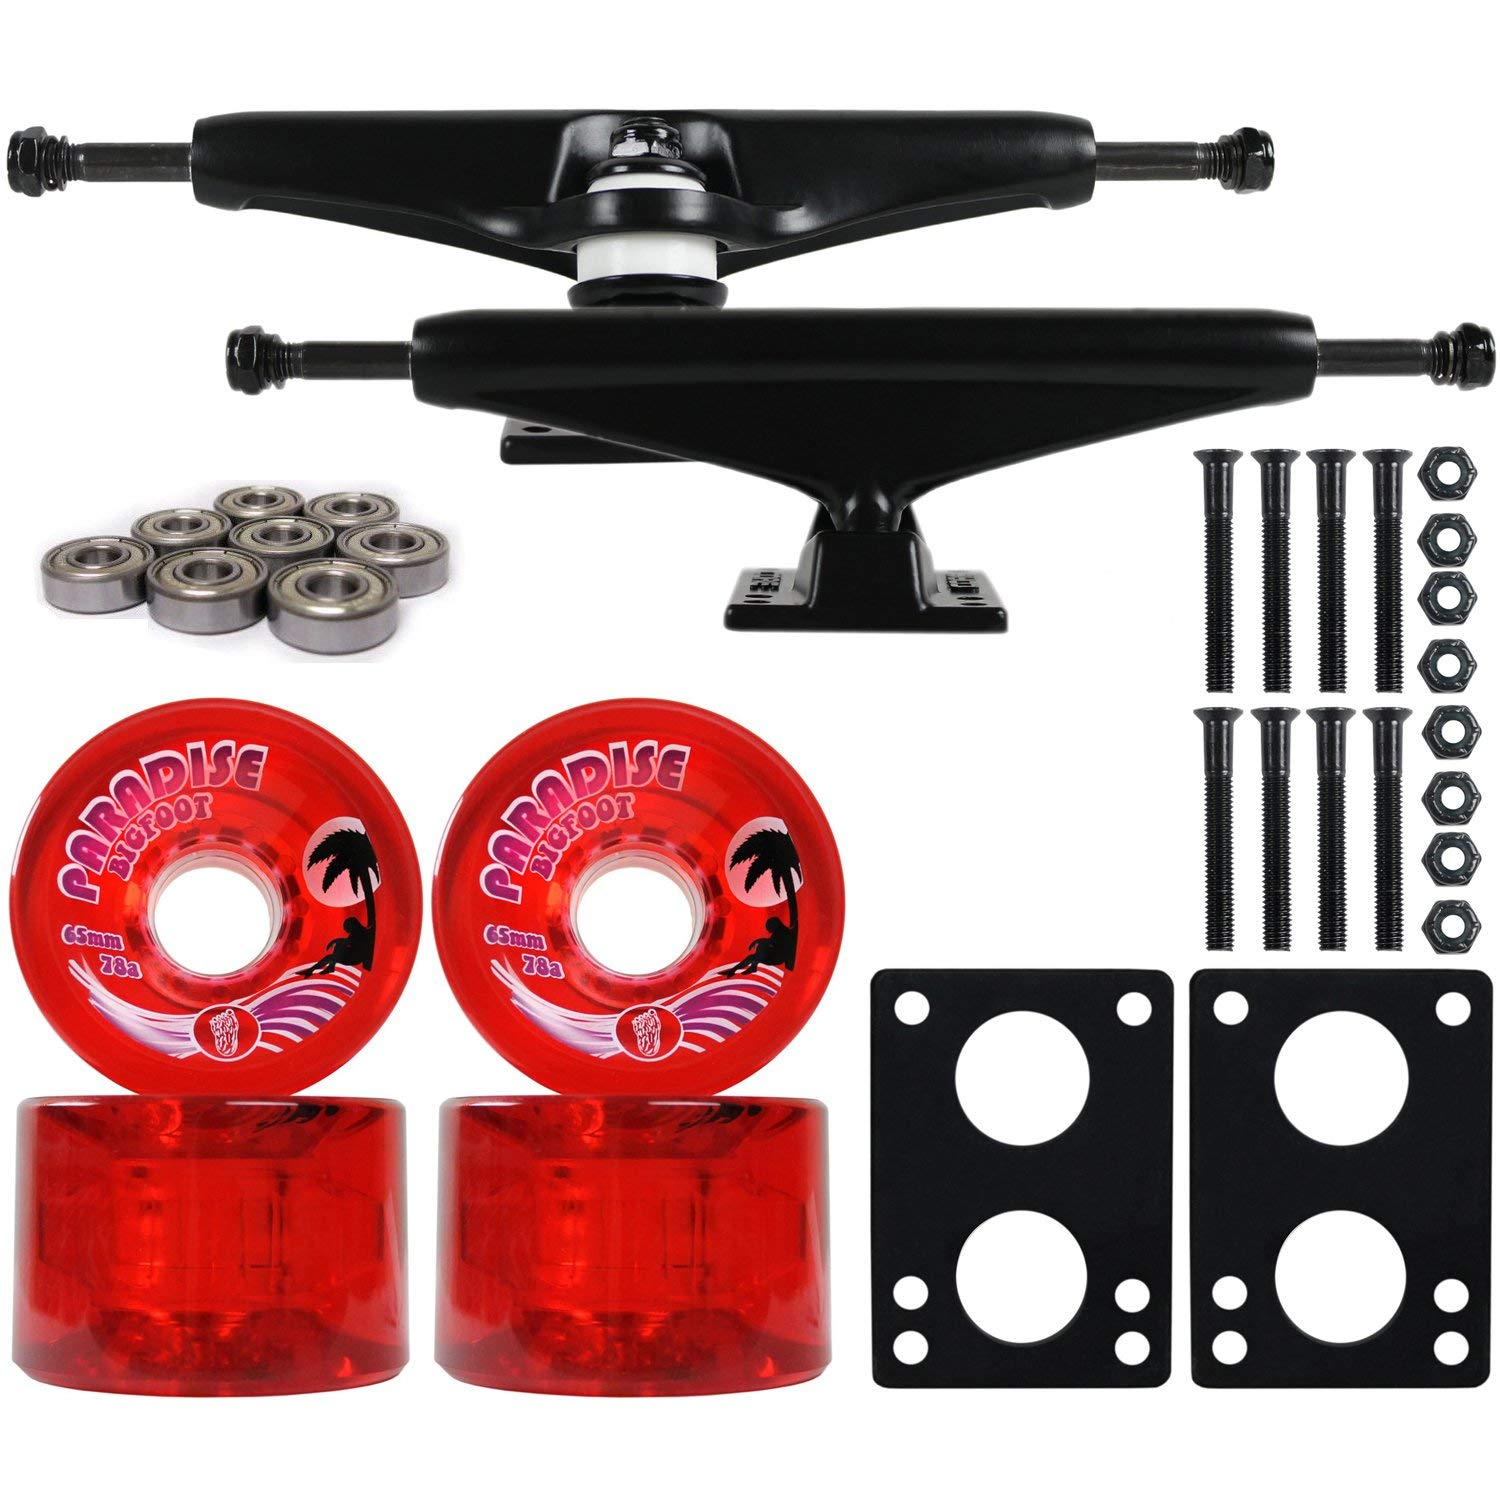 Longboard Skateboard Trucks Combo Set 65mm Bigfoot Islanders Wheels with Black Trucks, Bearings, and Hardware Package